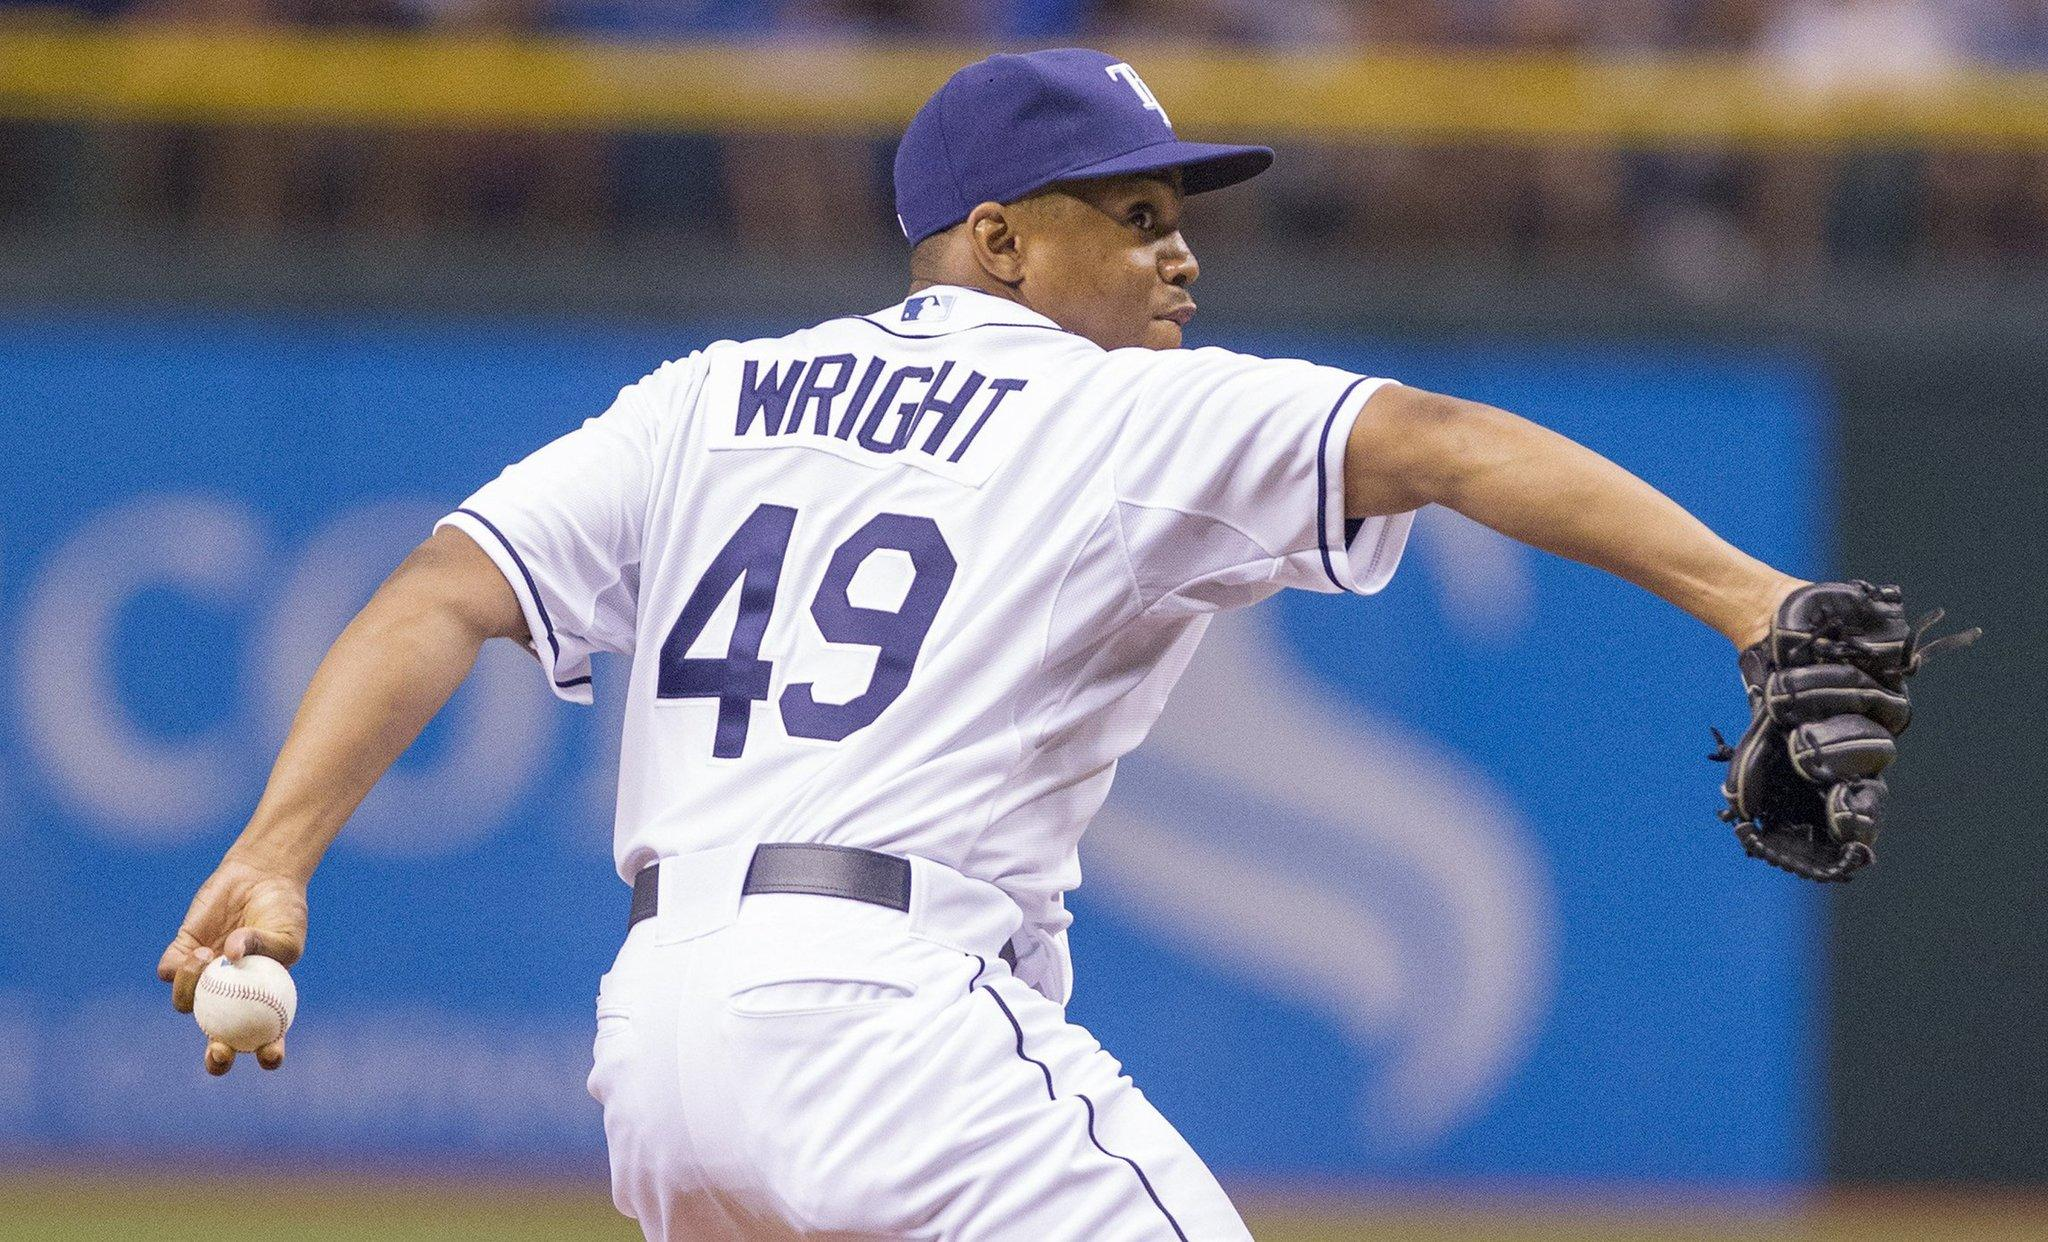 Wesley Wright pitches for the Rays during a game in August.